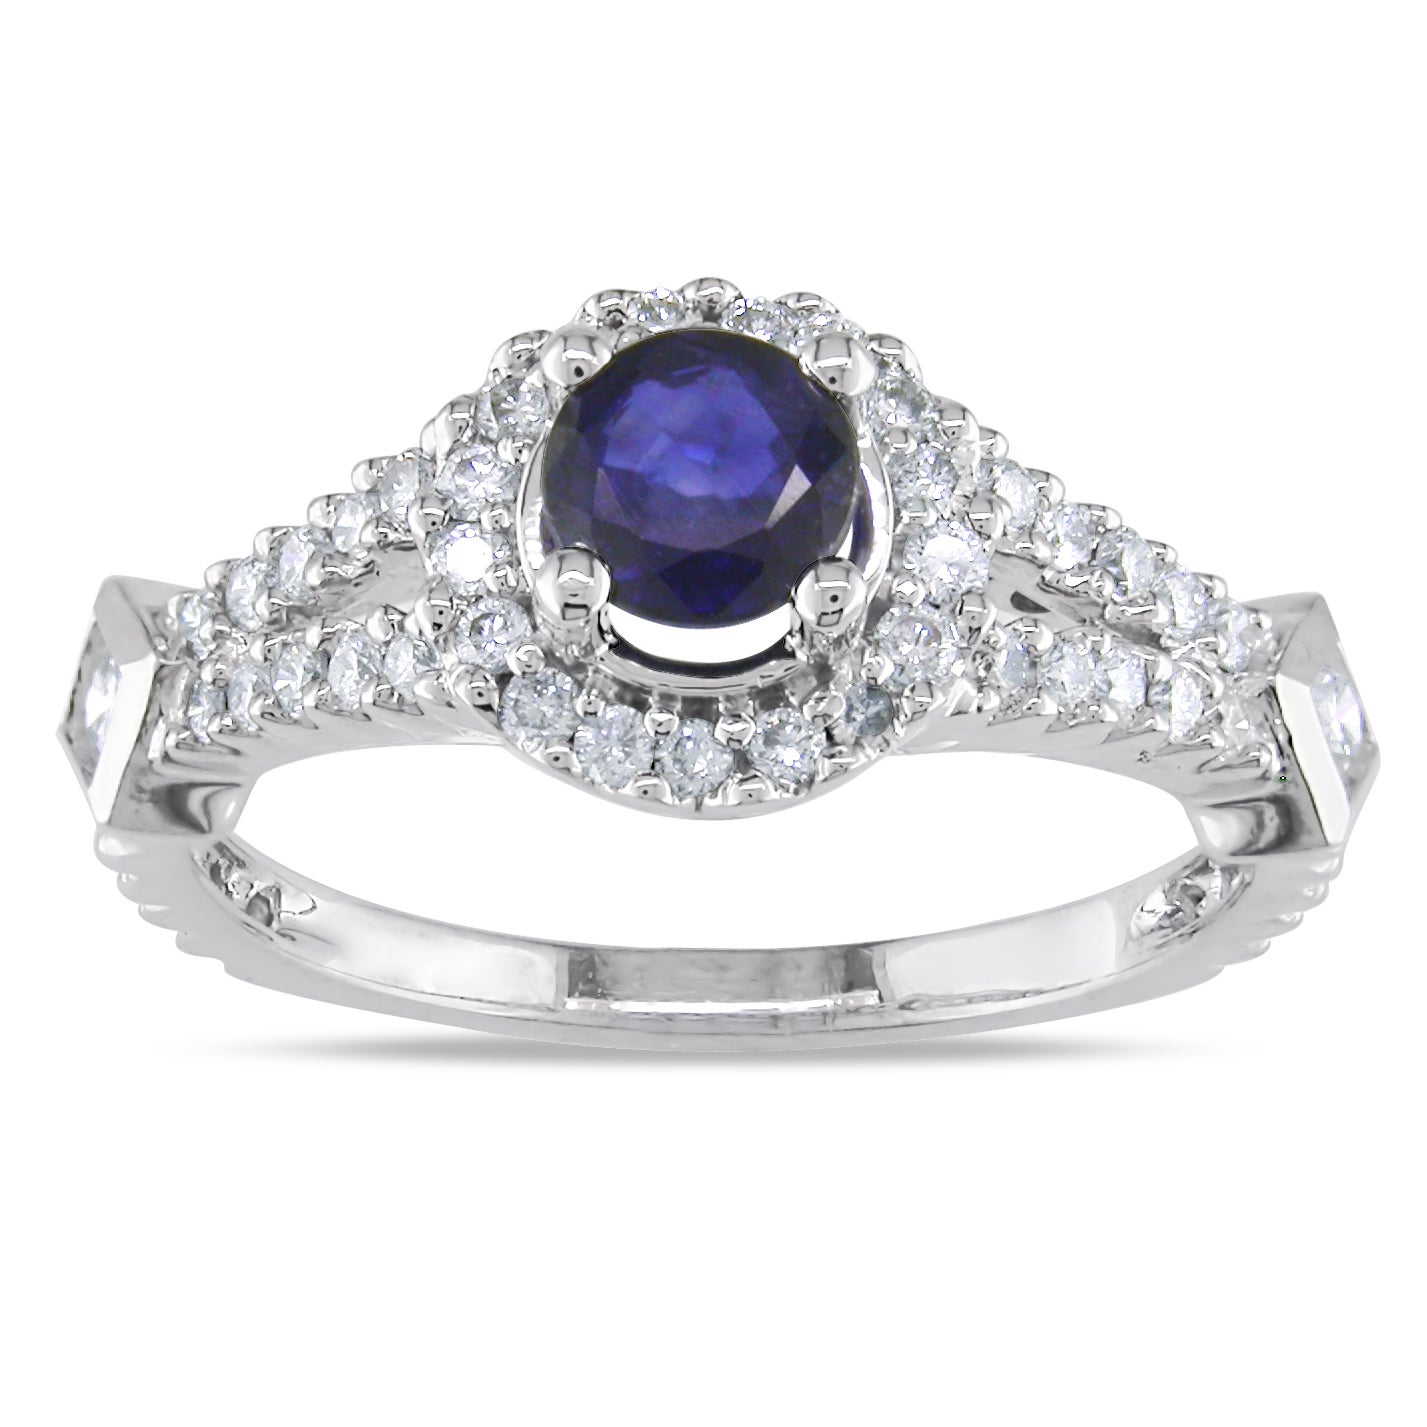 Miadora Midadora 18k White Gold 1 1/10ct TGW Sapphire and 1/2ct TDW Diamond Ring (G-H, SI1-SI2) - Thumbnail 0